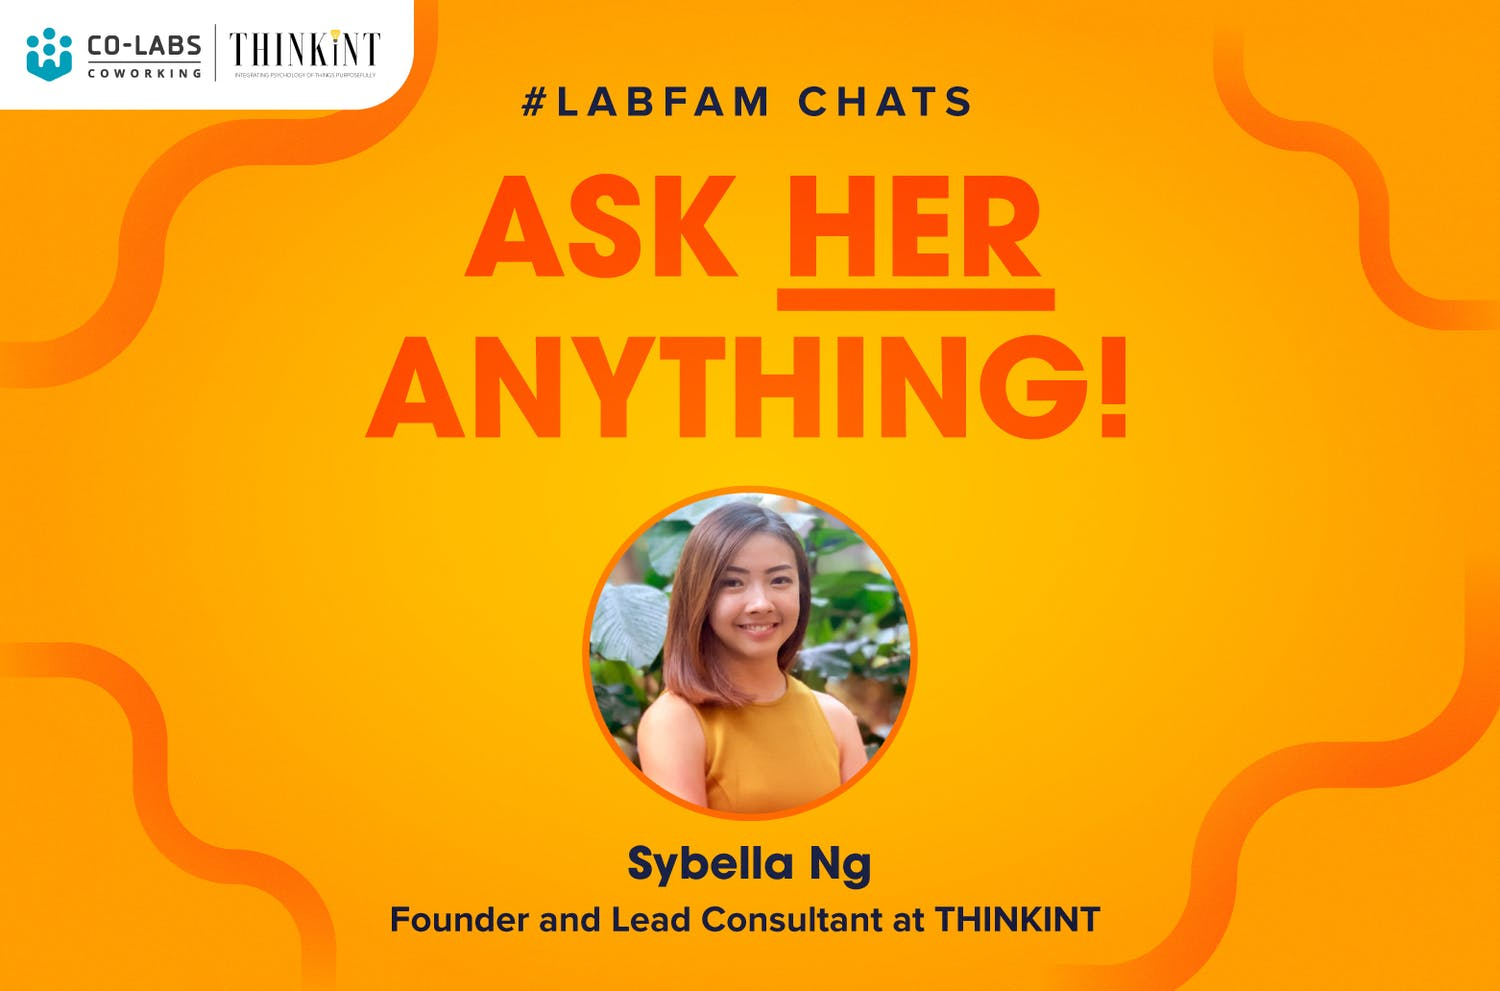 #LabFam Chats: Ask Her Anything with Sybella Ng